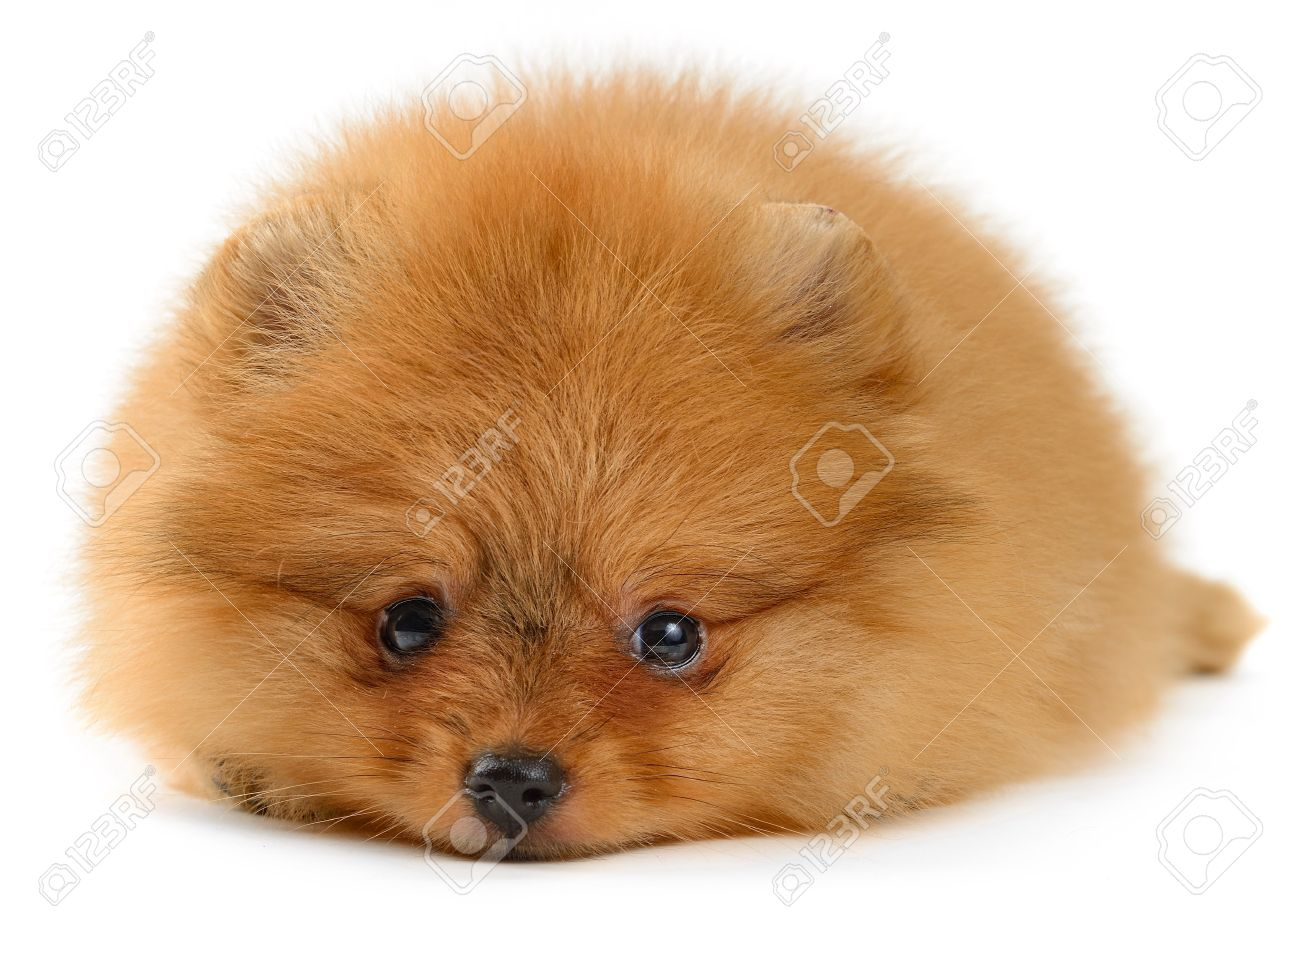 pomeranian puppy the age of 1,5 month isolated on white Stock Photo - 20884201